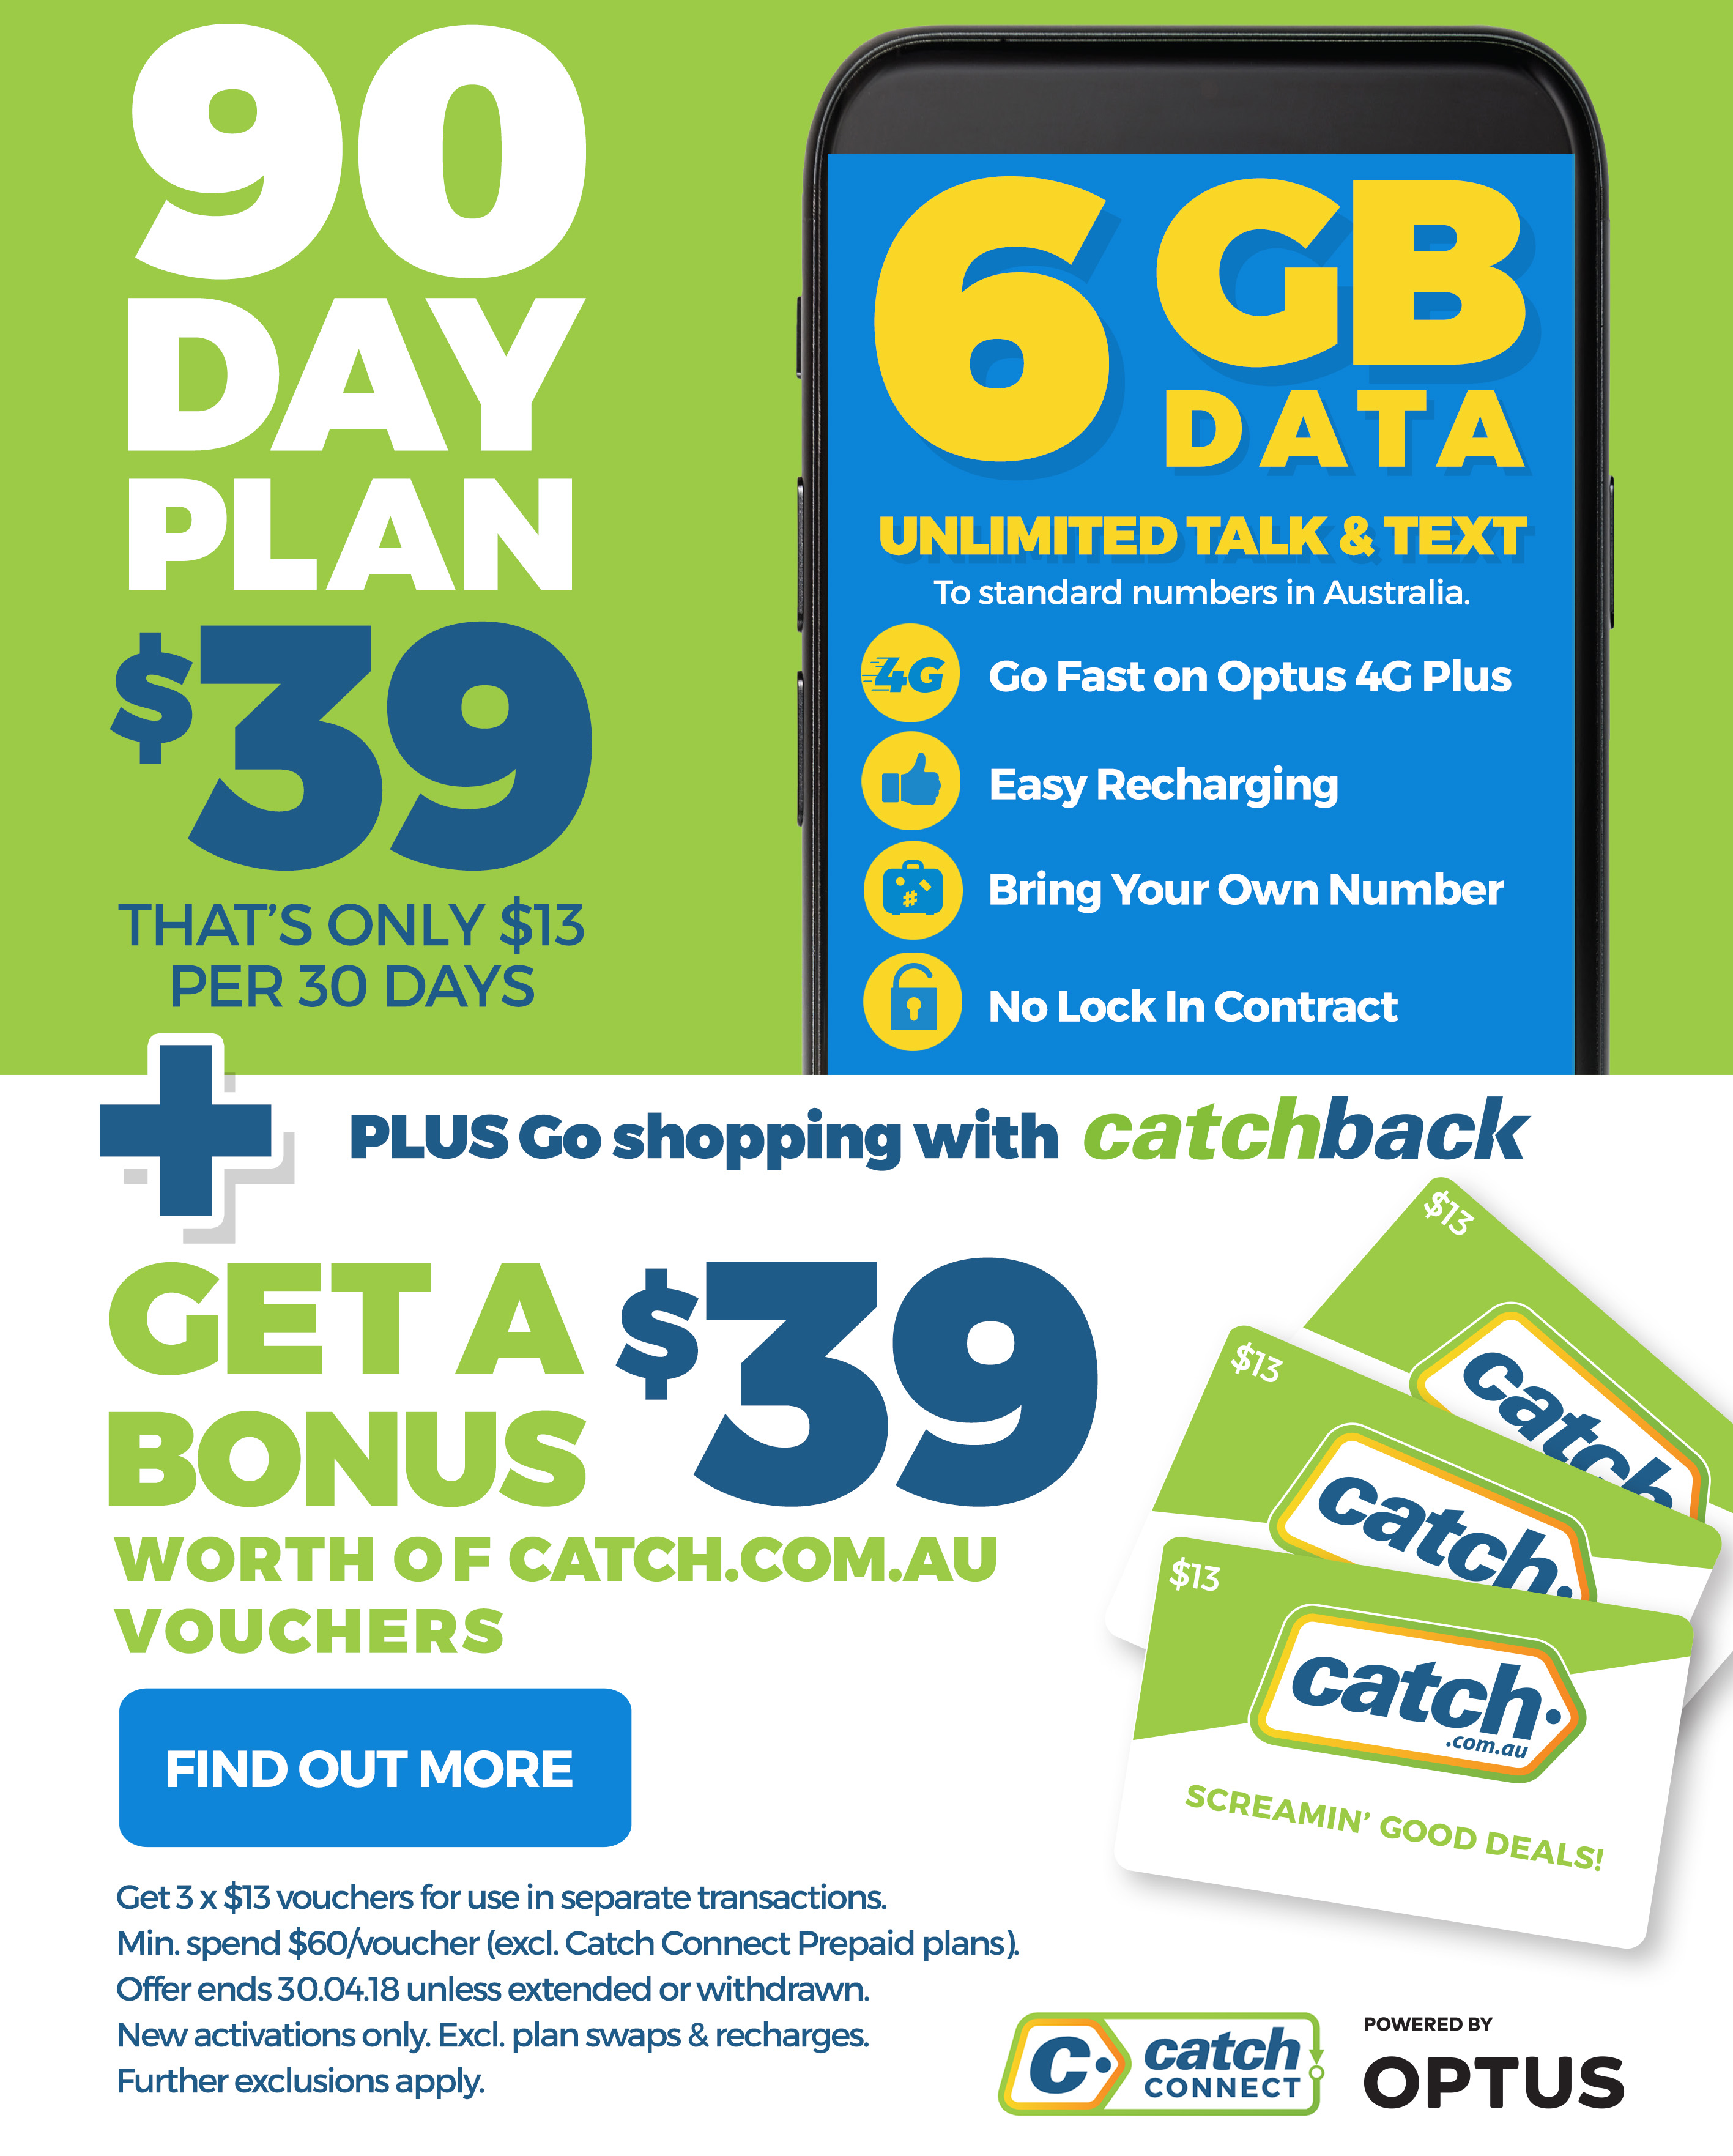 90 Day Plan $39 + get a bonus $39 worth of catch.com.au vouchers